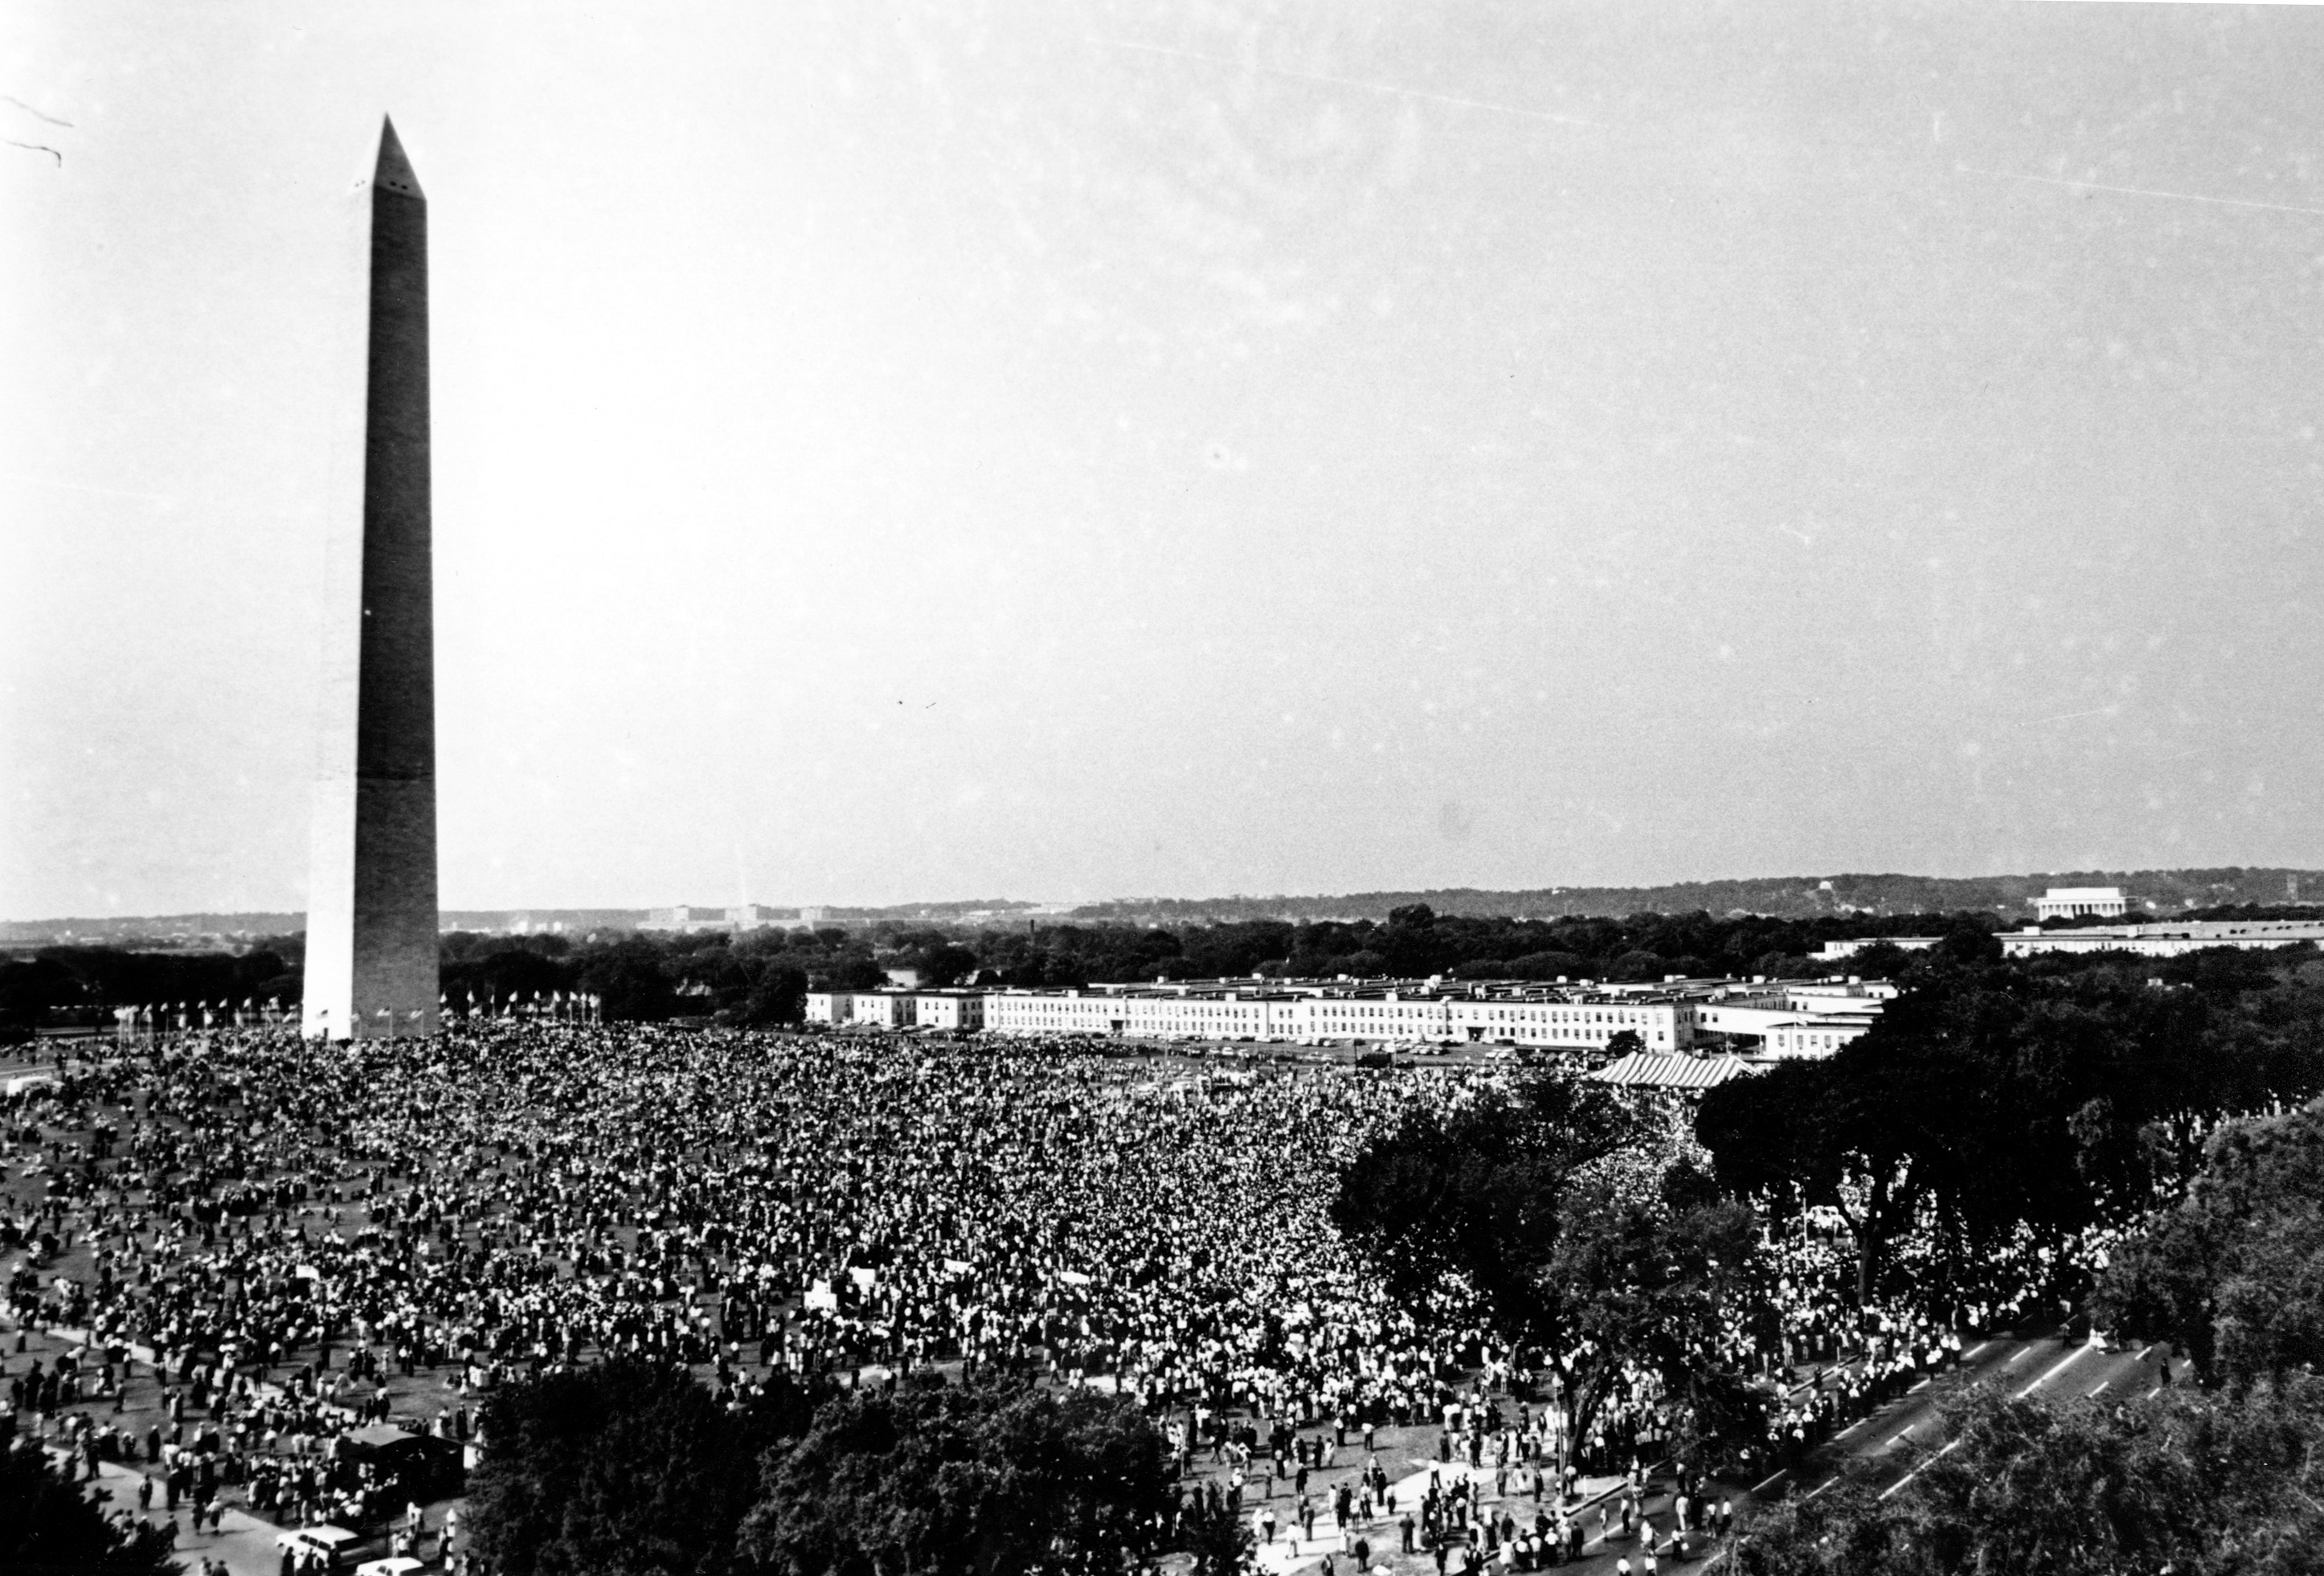 Thousands gather at the Washington Monument grounds on Aug. 28, 1963 before marching to the Lincoln Memorial.